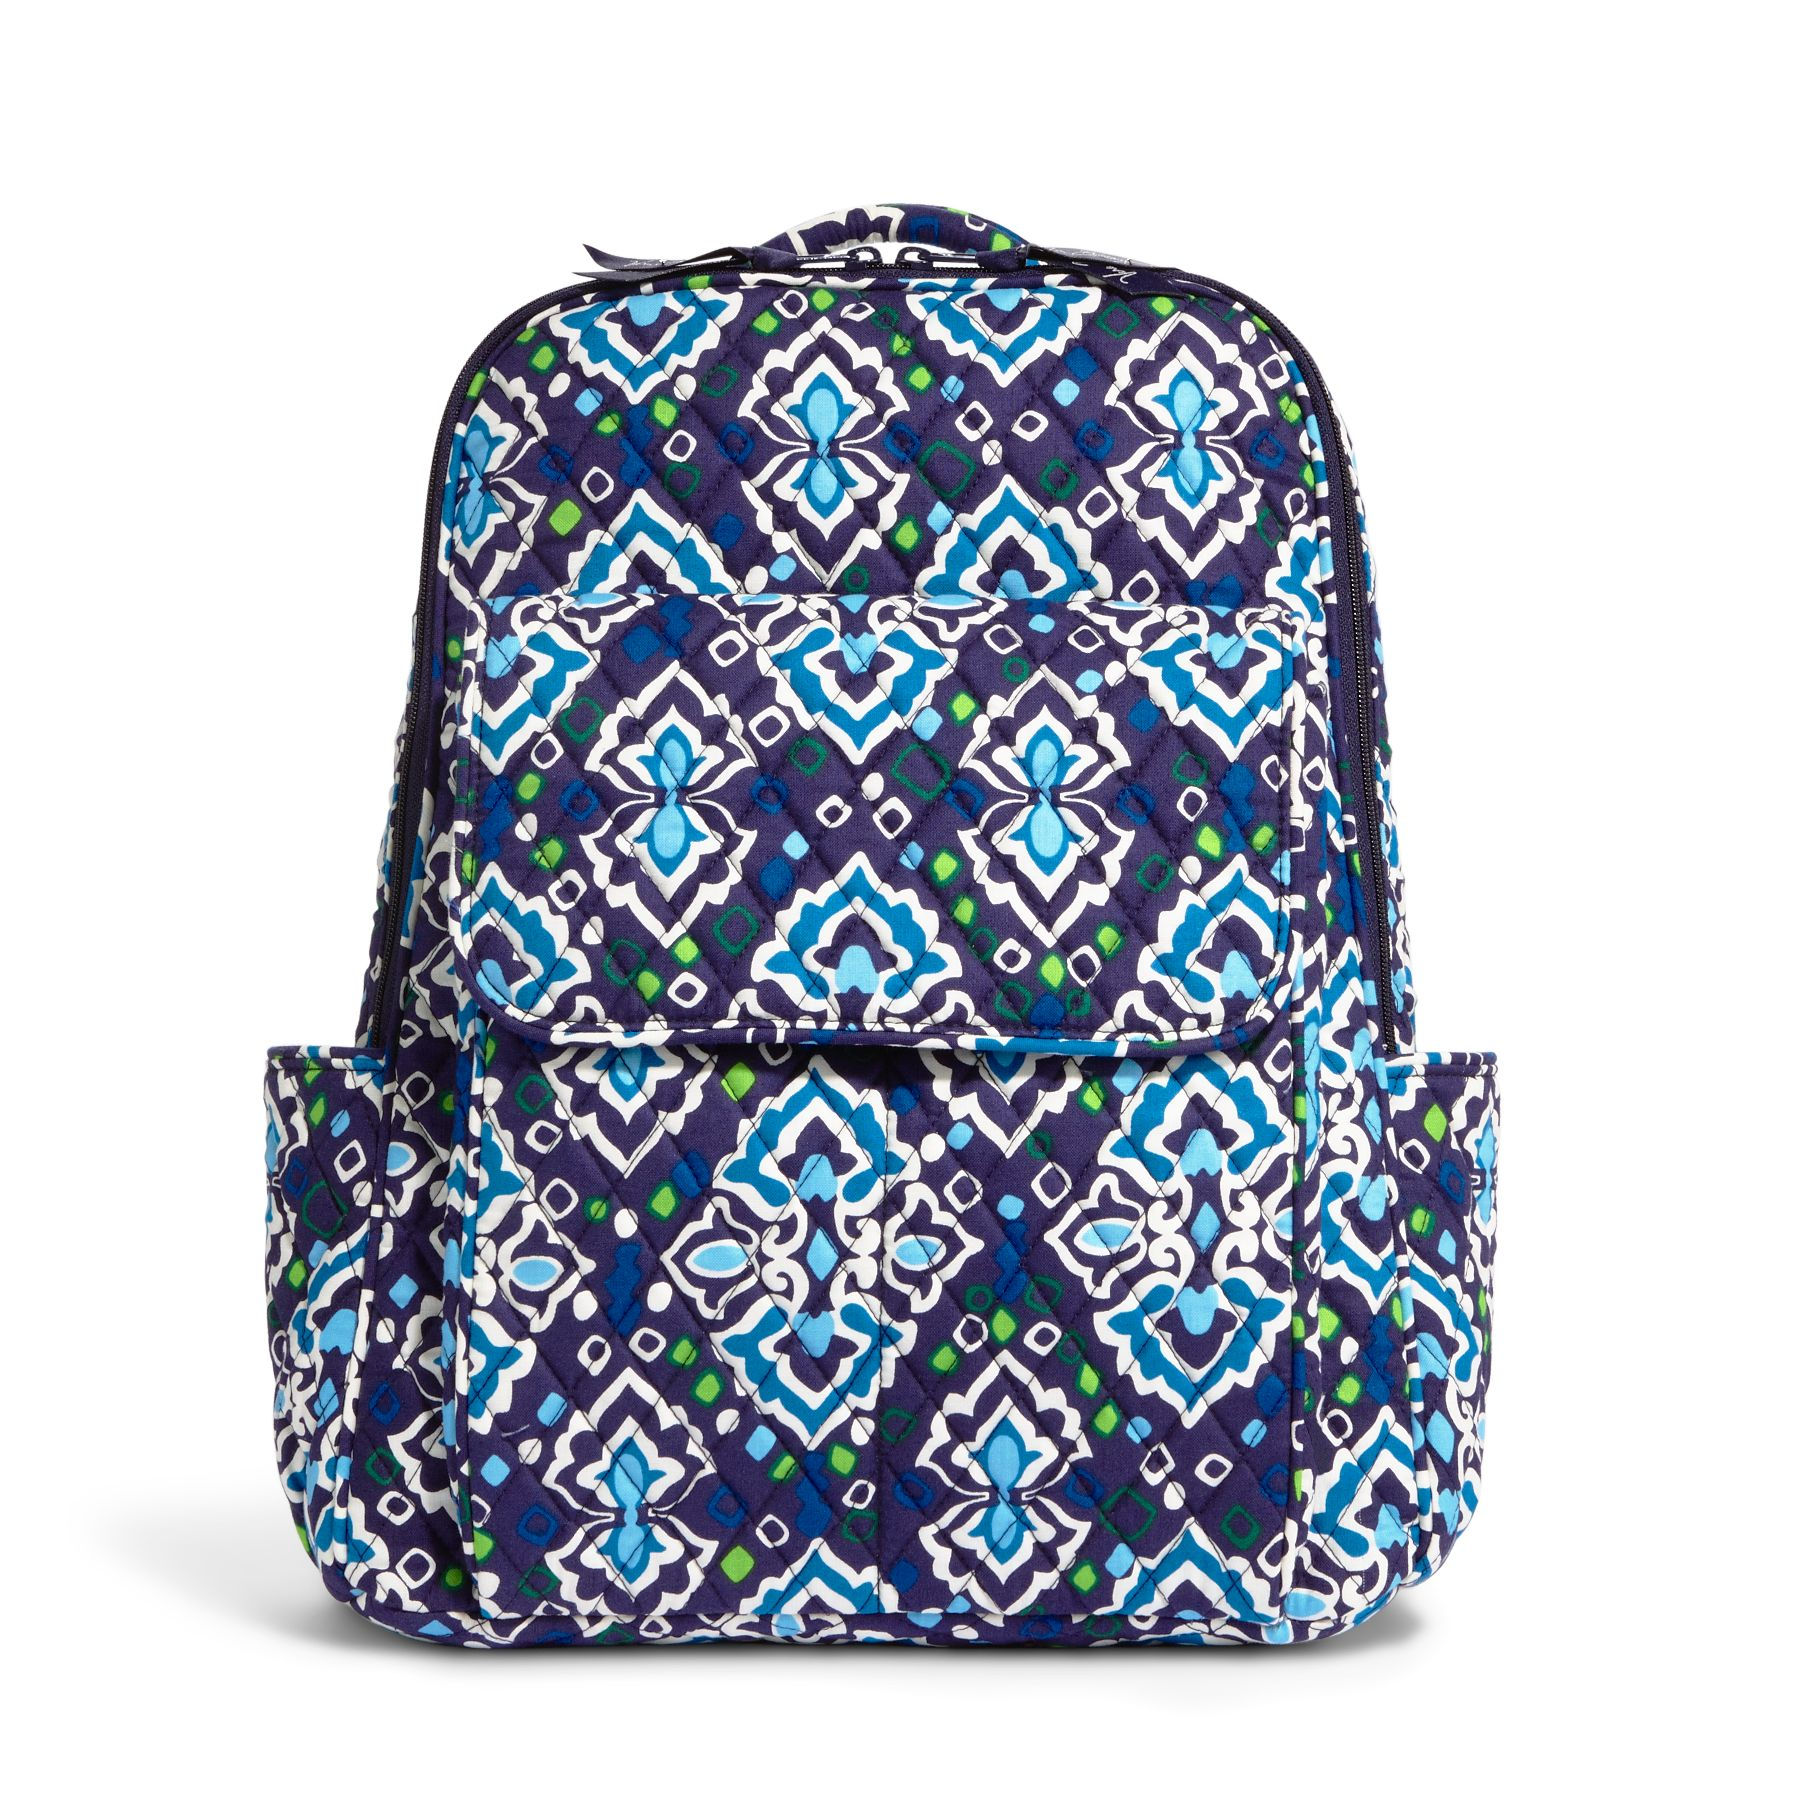 Vera Bradley Ultimate Backpack in Ink Blue